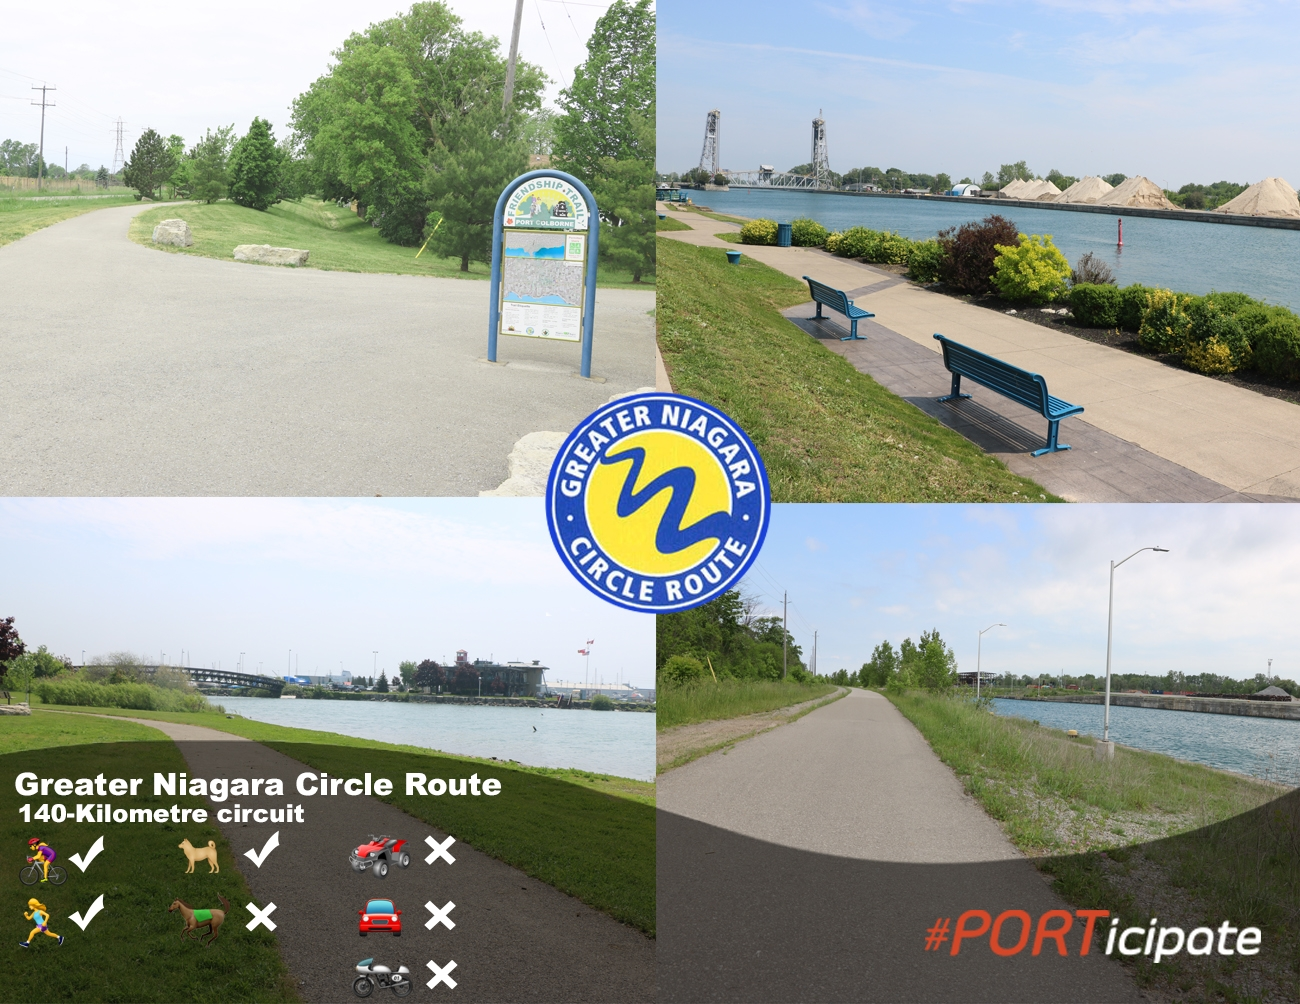 Greater Niagara Circle Route Images